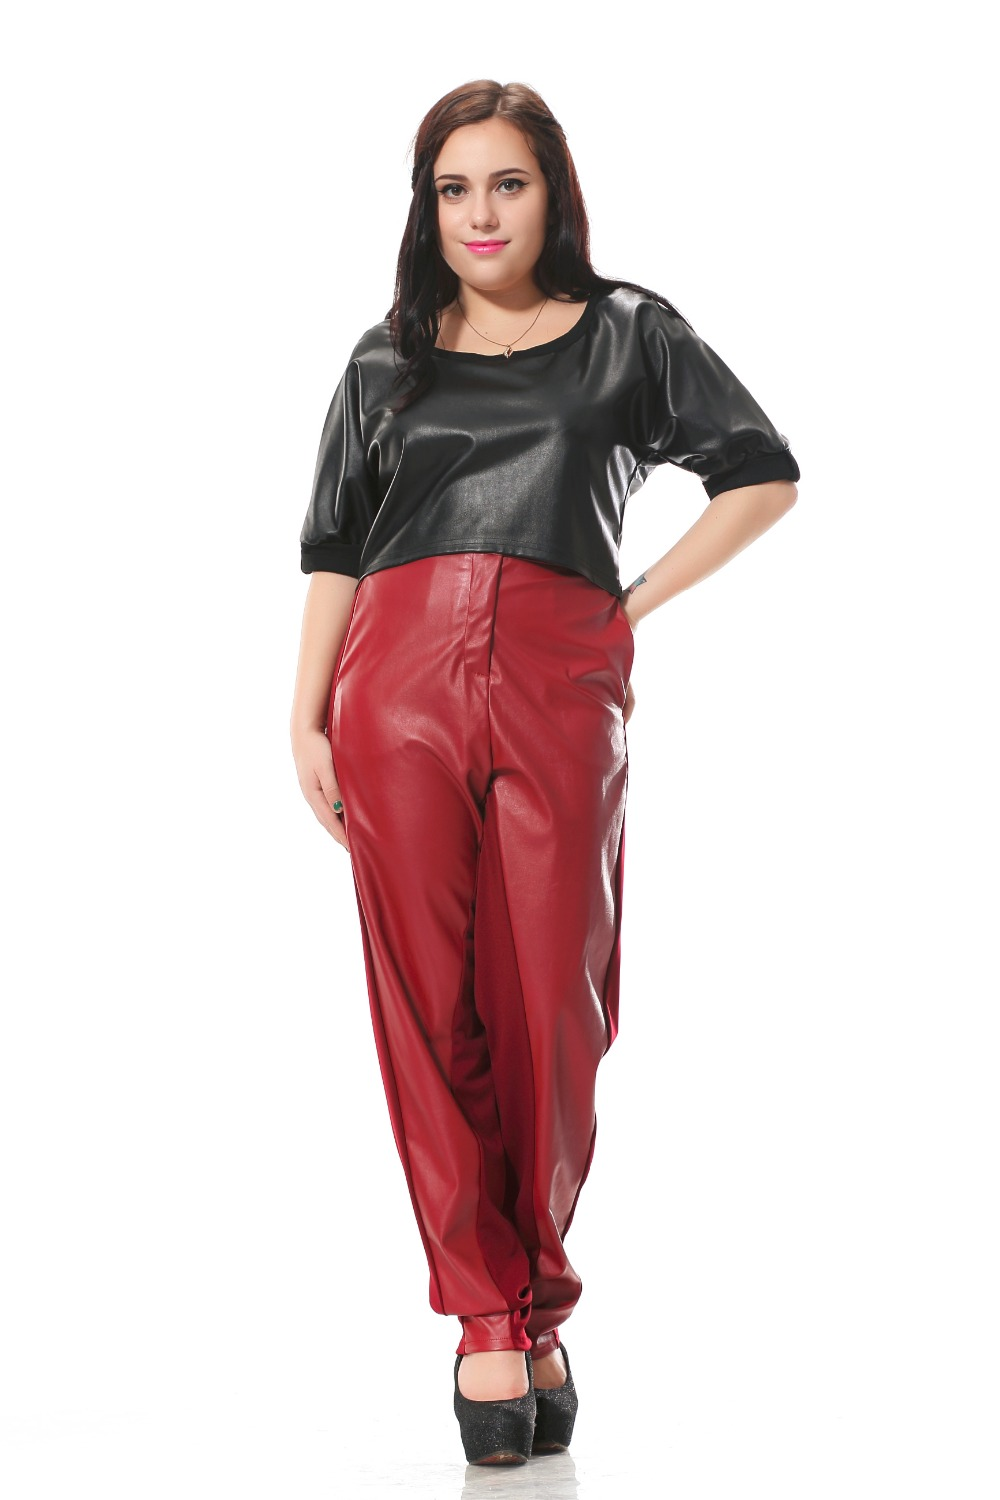 Amazing  Red Pants On Pinterest  Red Jeans Outfit Red Pants Outfit And Red